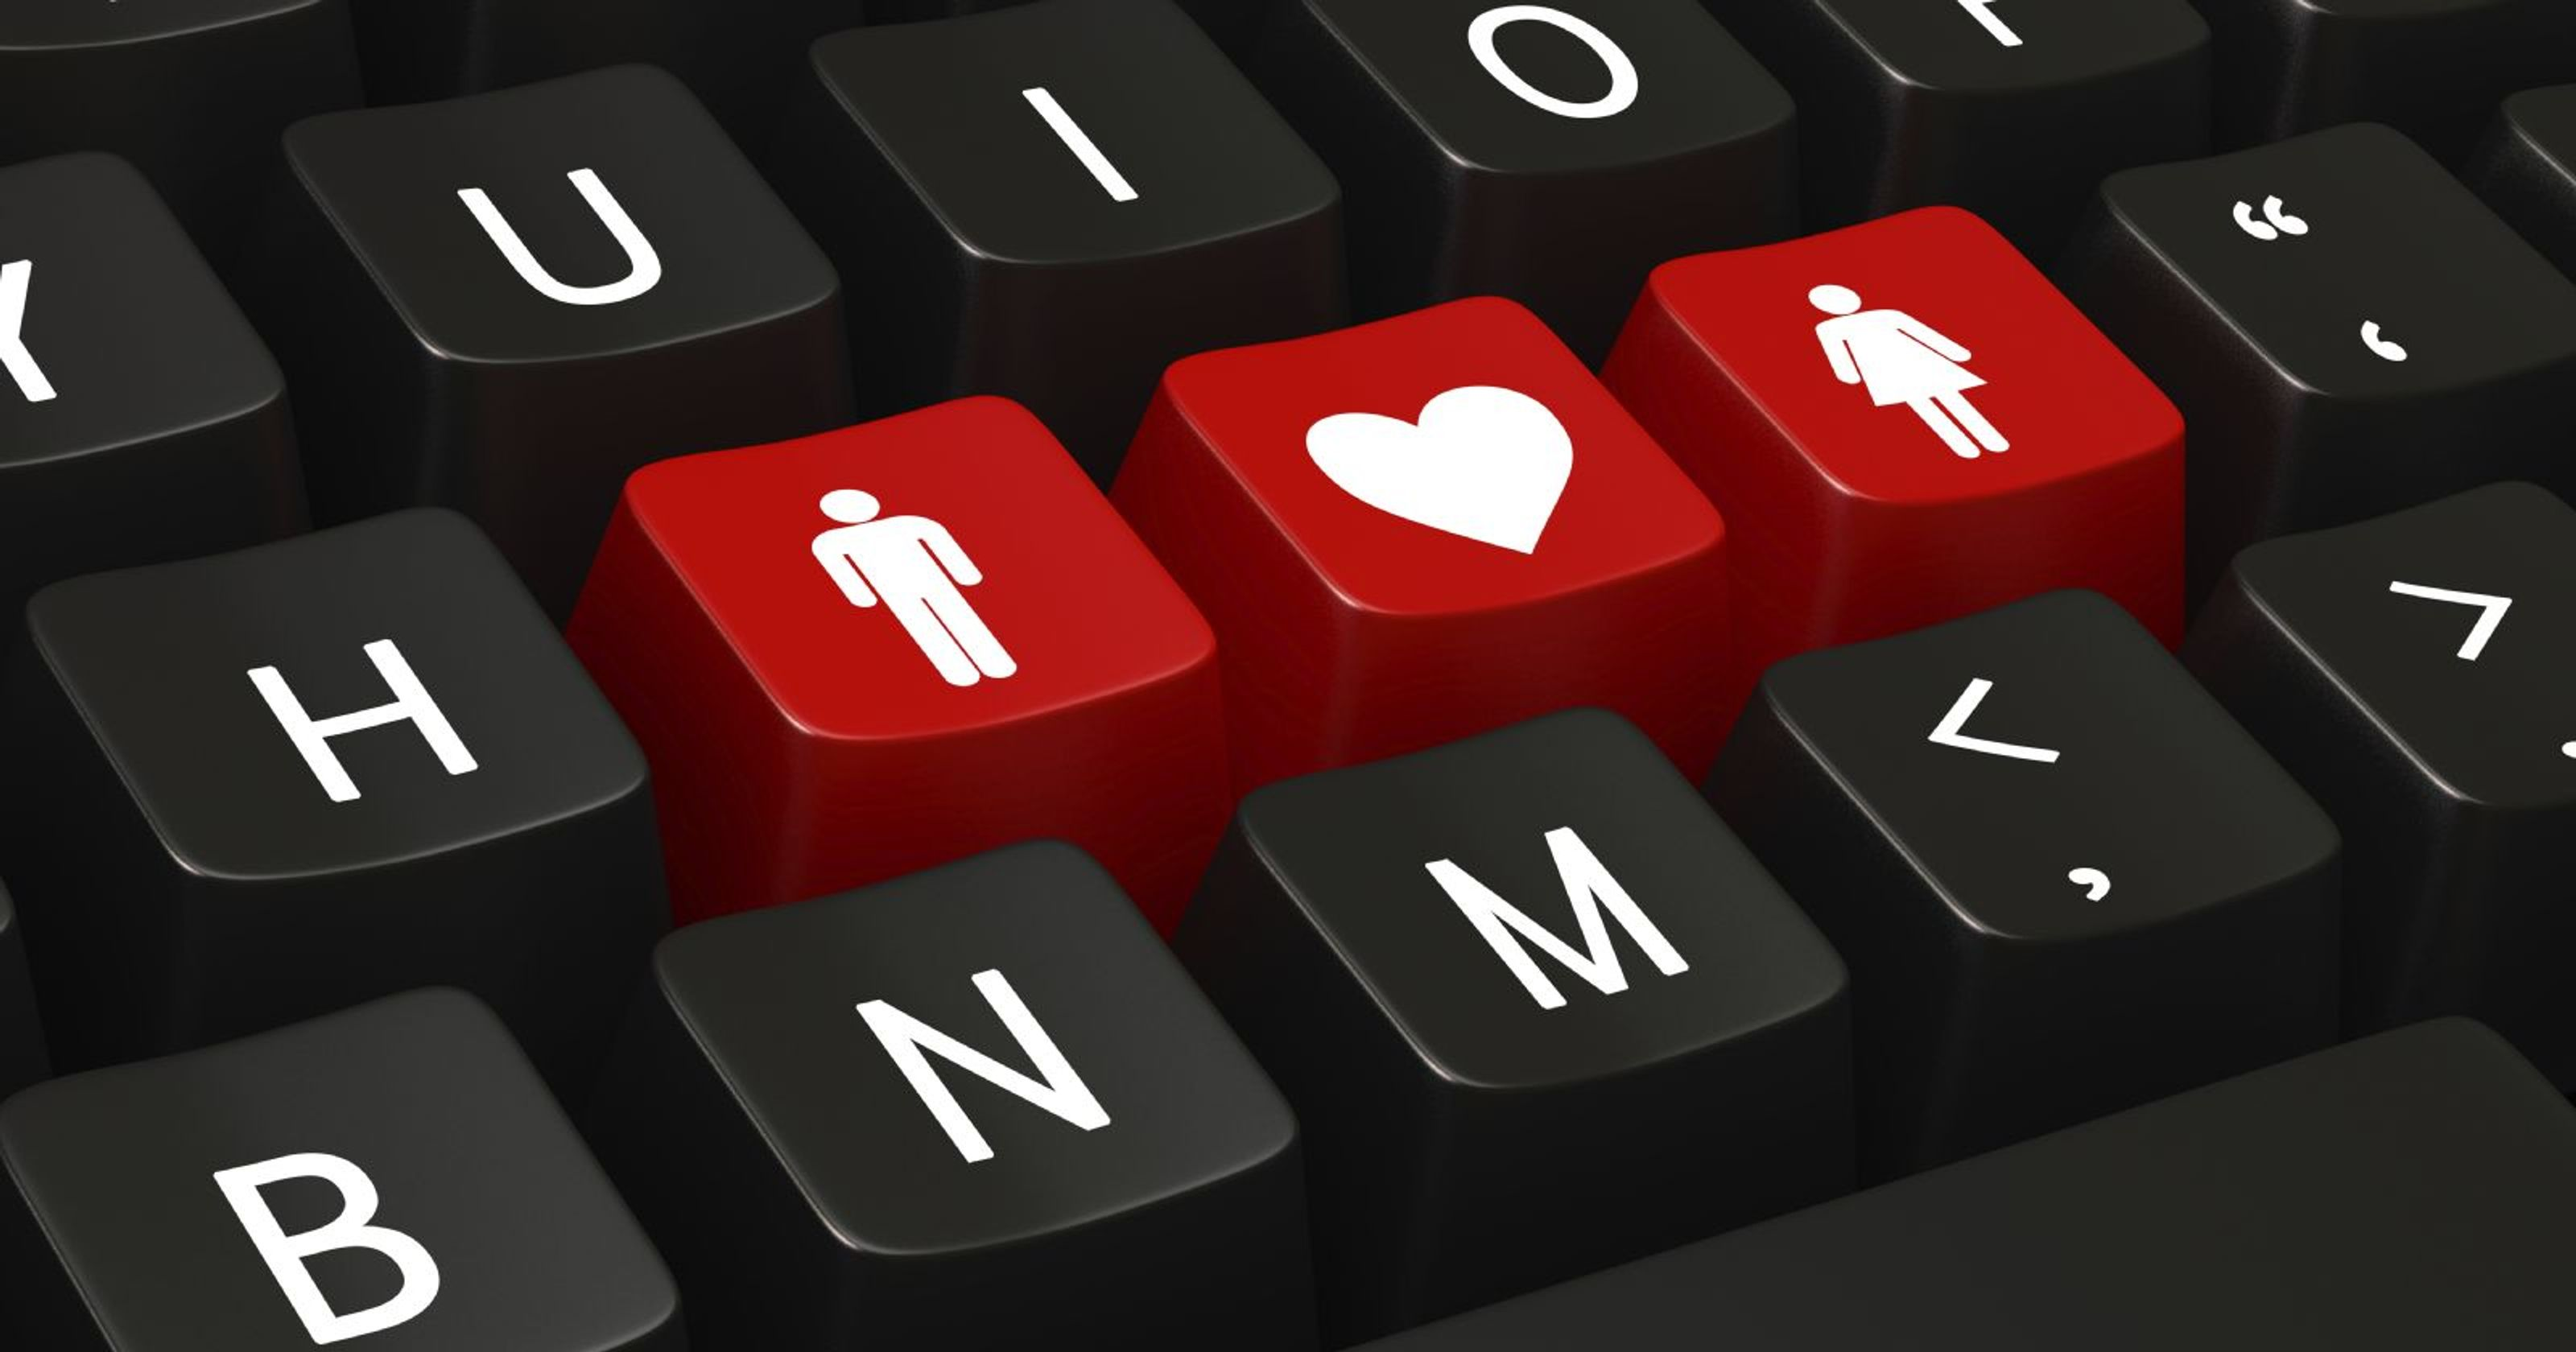 Online romance scams cost victims thousands. Read the story of one man who lost $31,000.